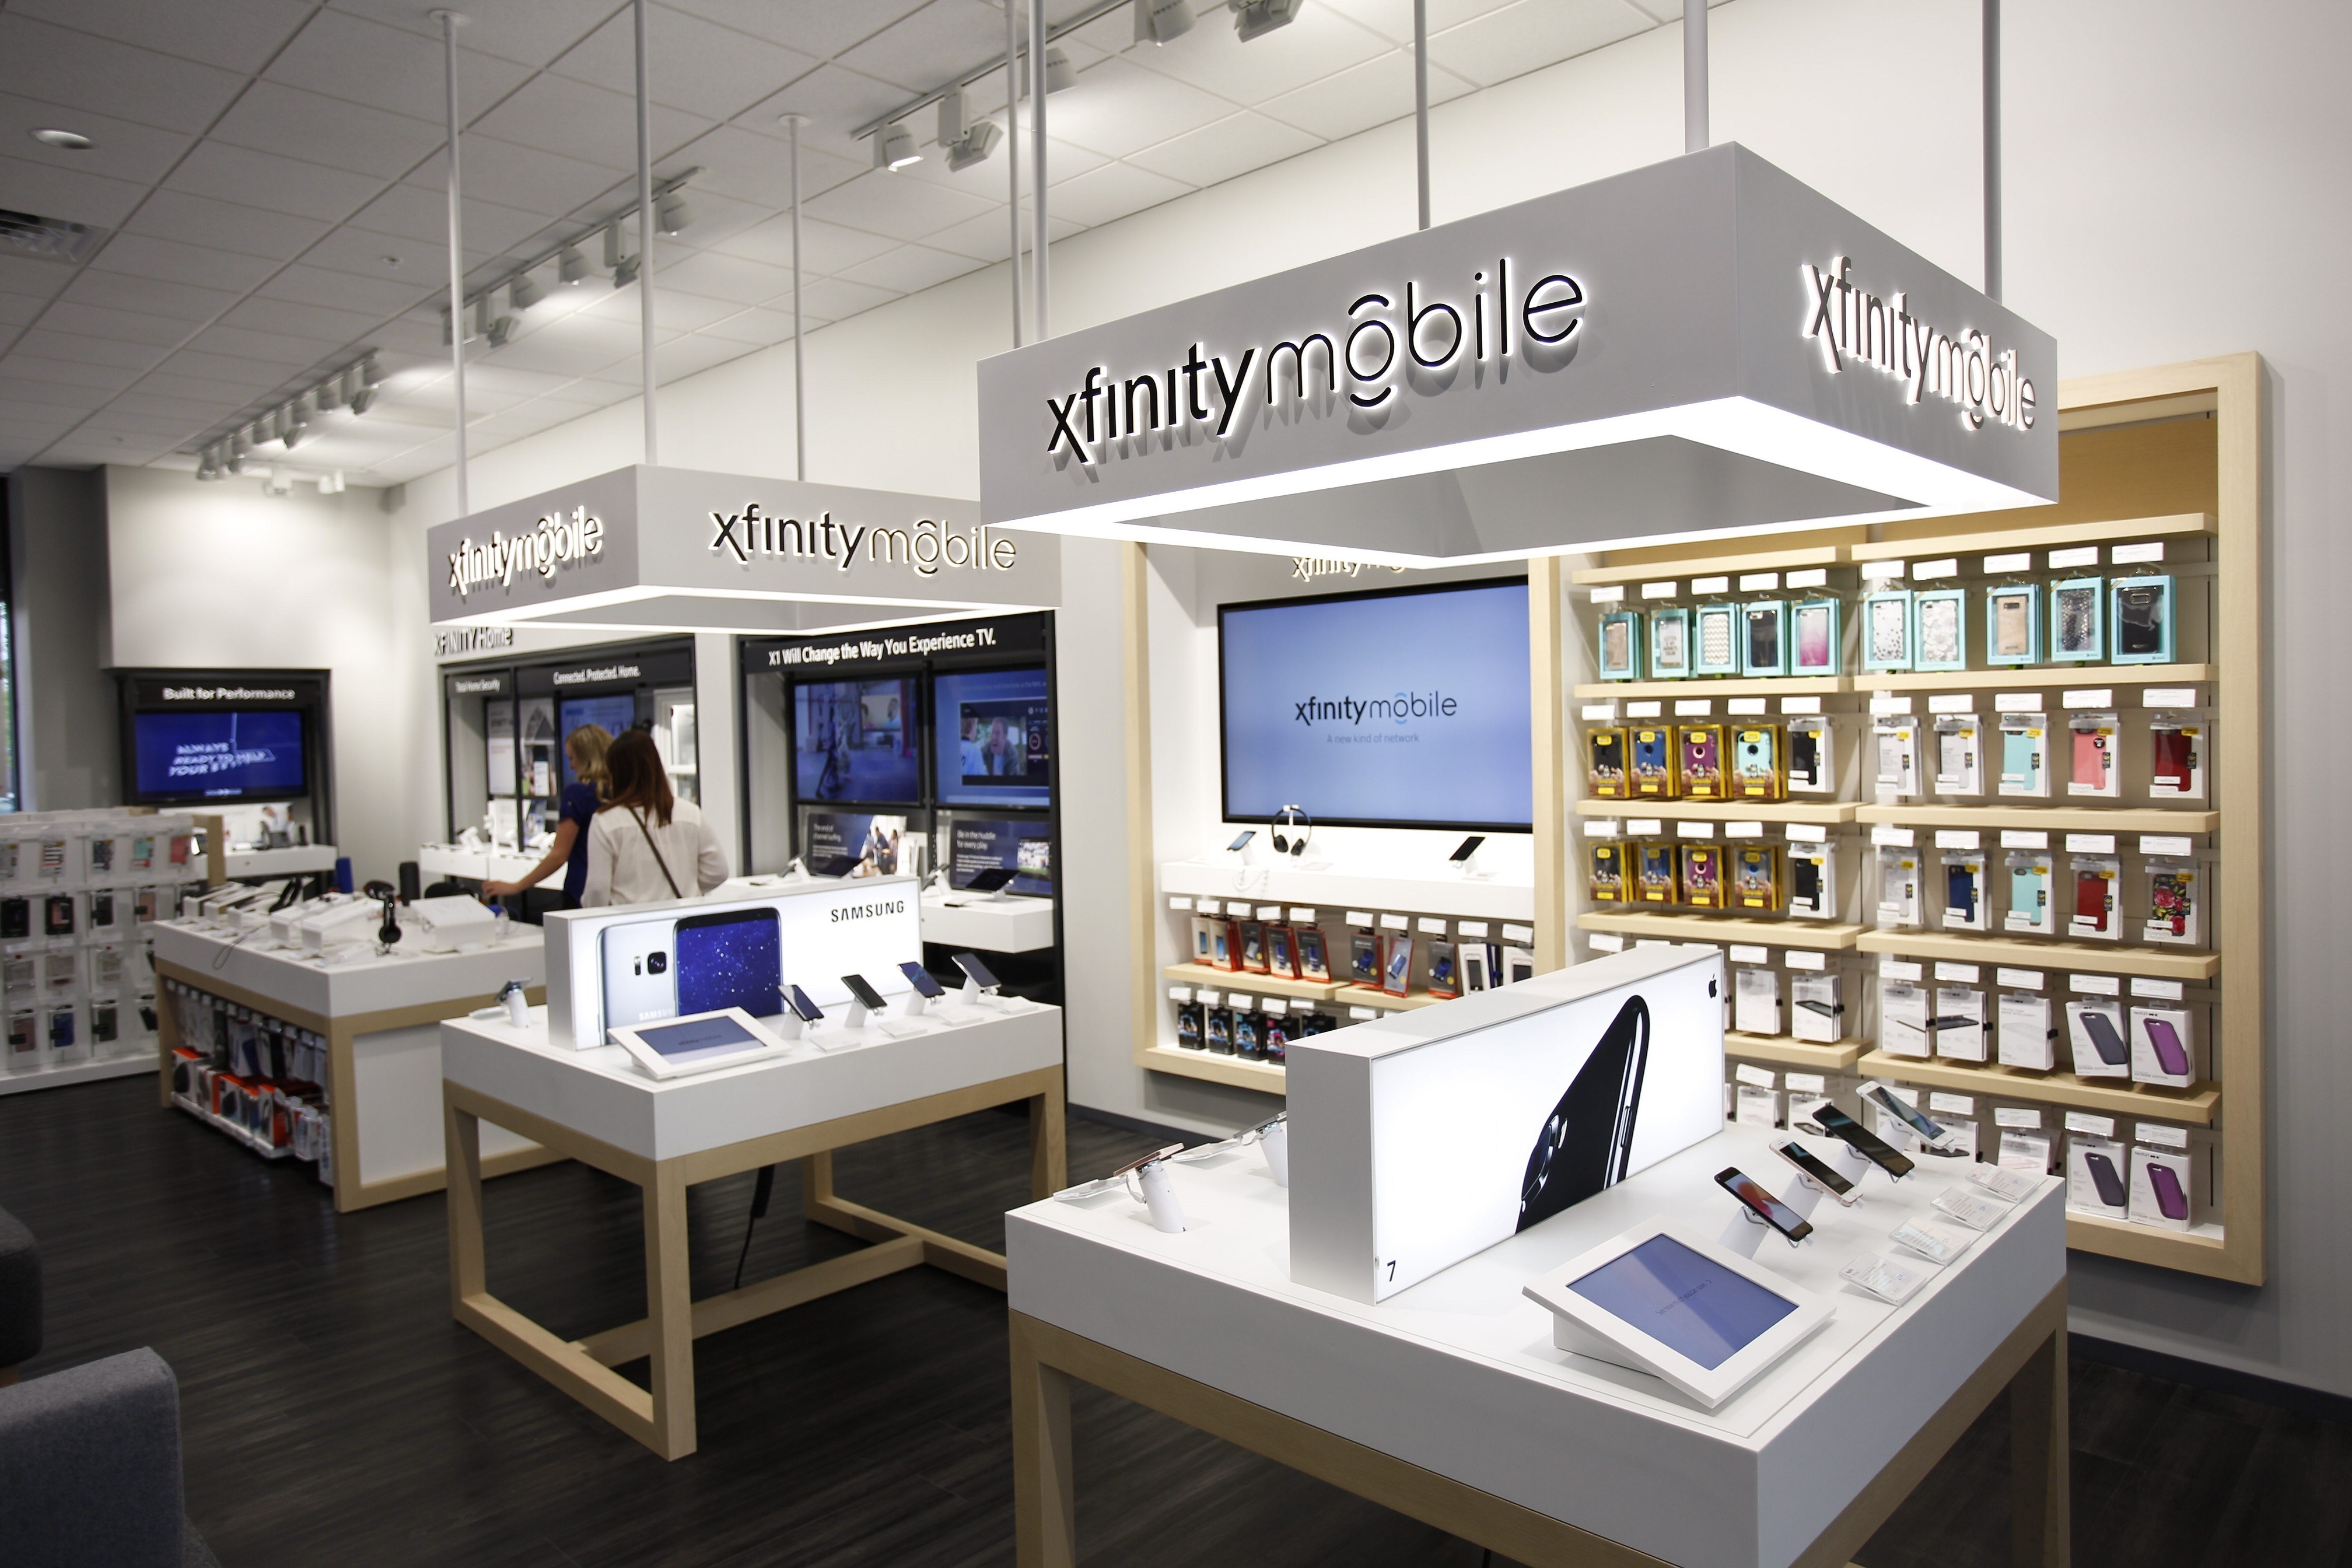 Local virgin mobile stores - Equate brands